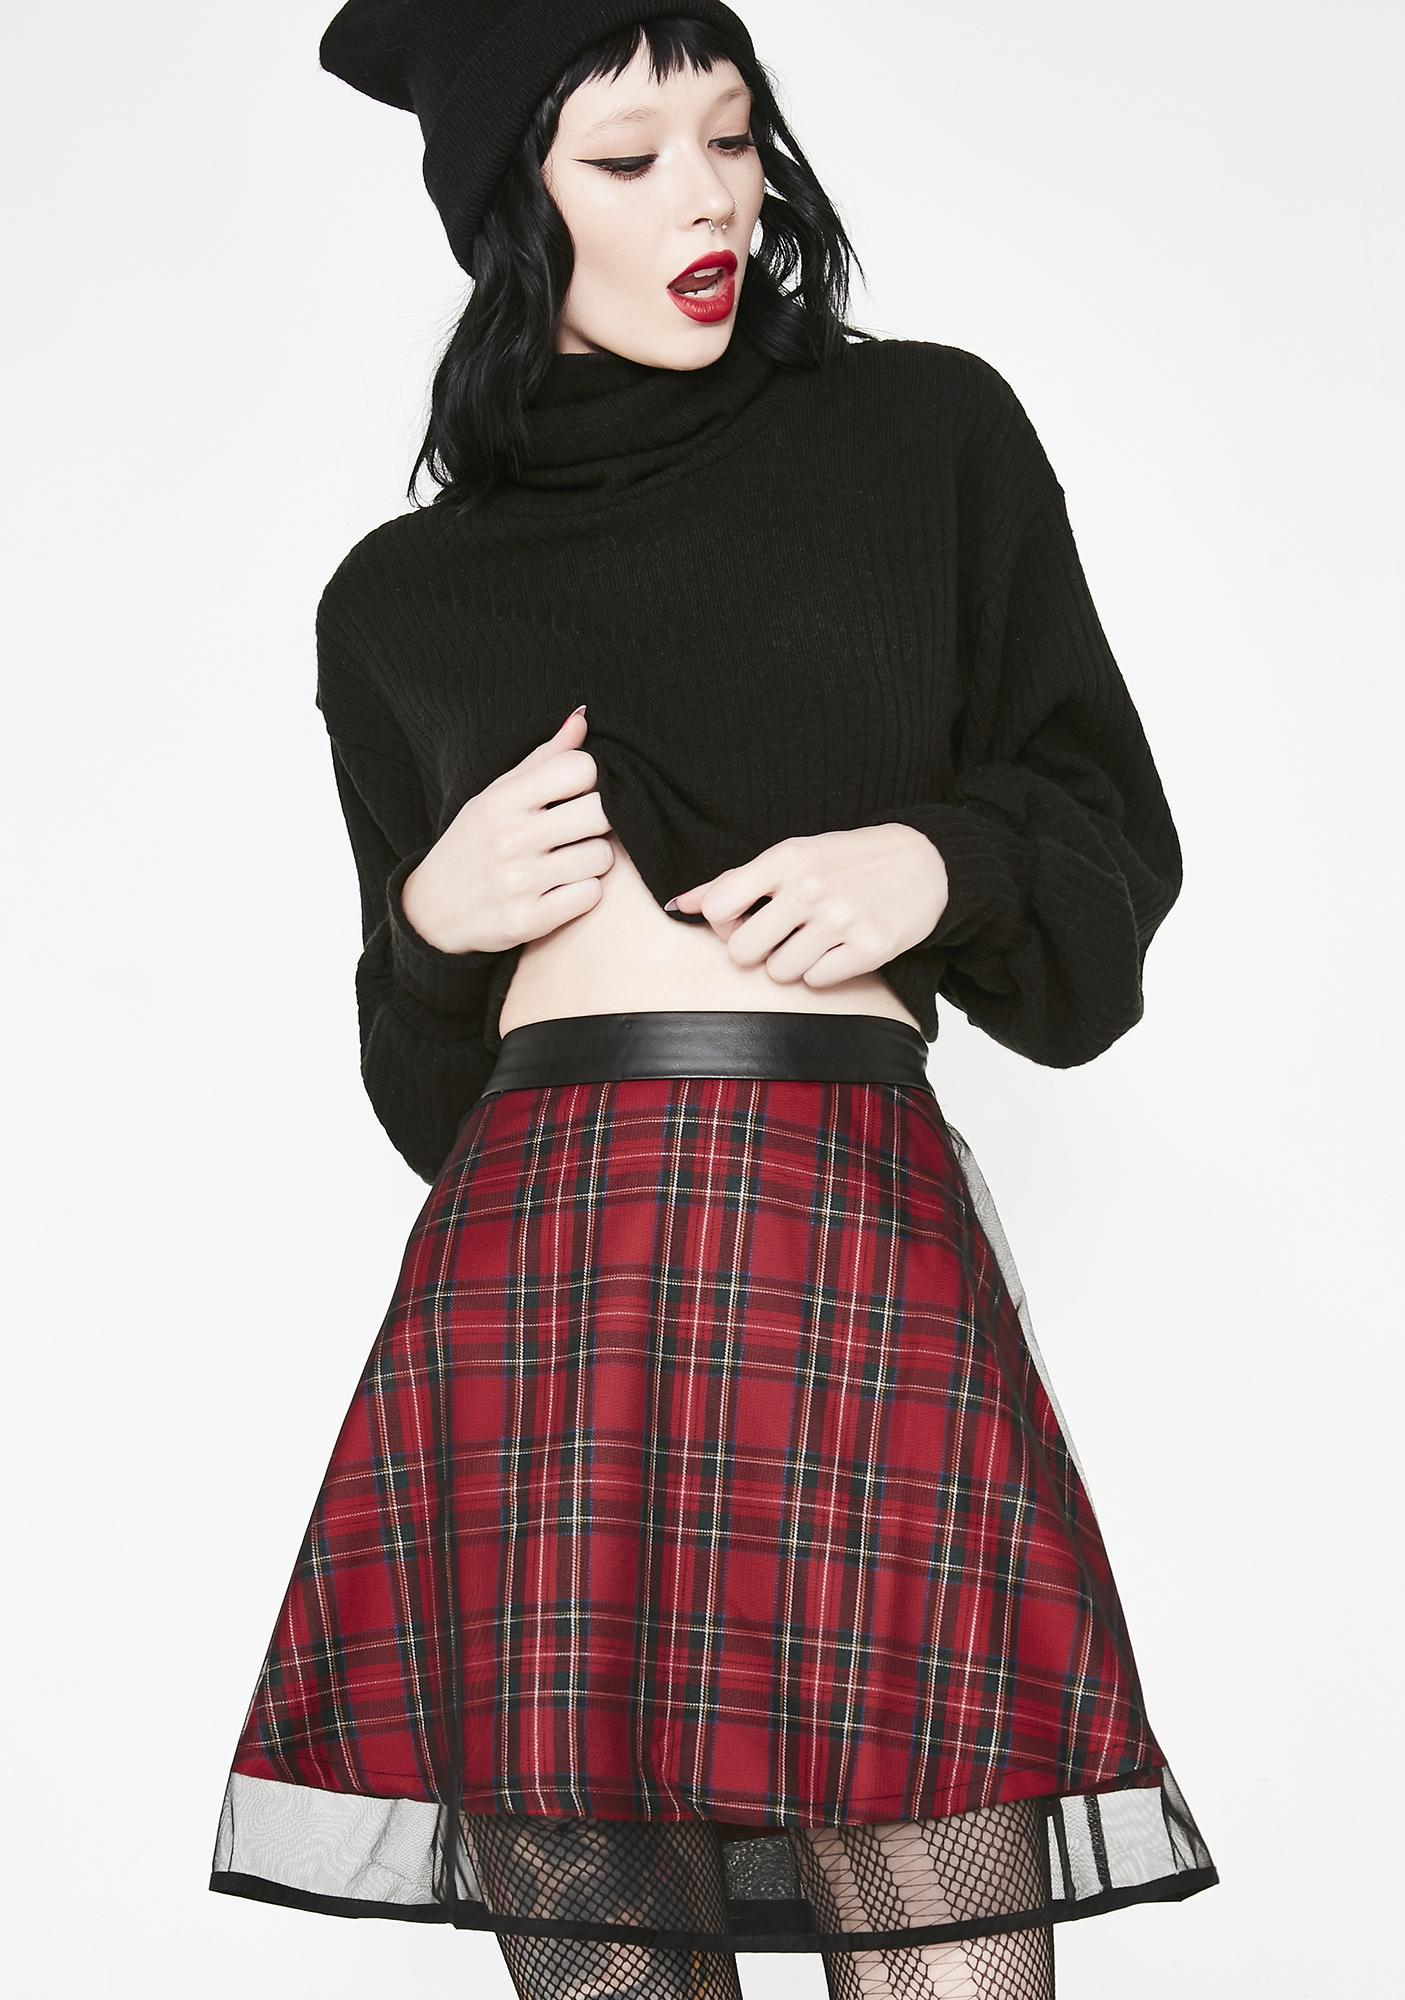 Plagiarism Two Layer Skirt